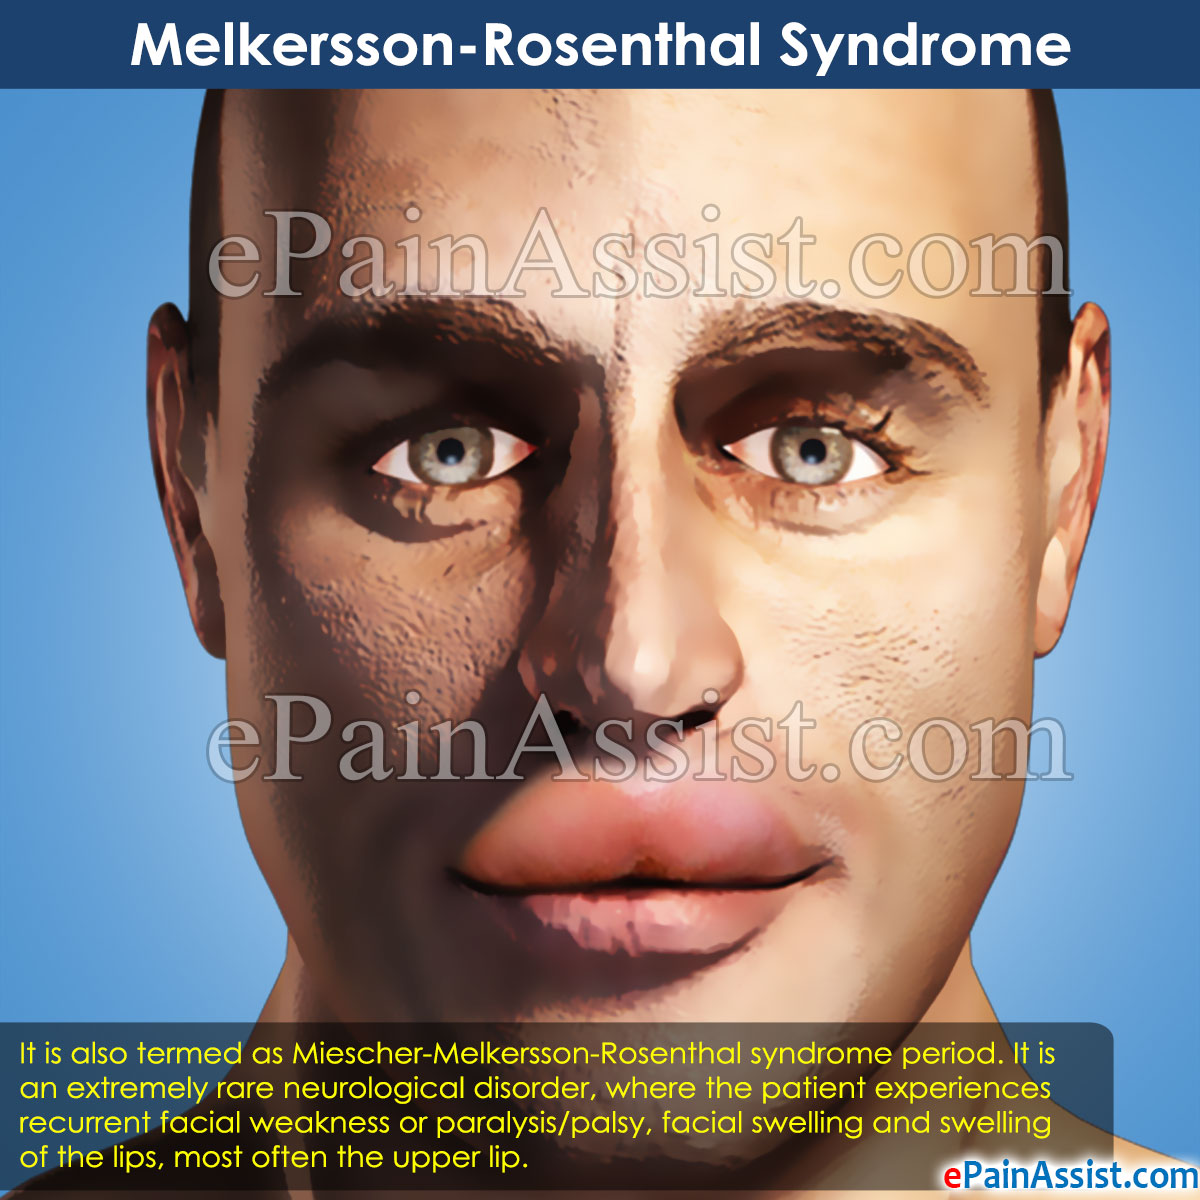 Melkersson-Rosenthal Syndrome